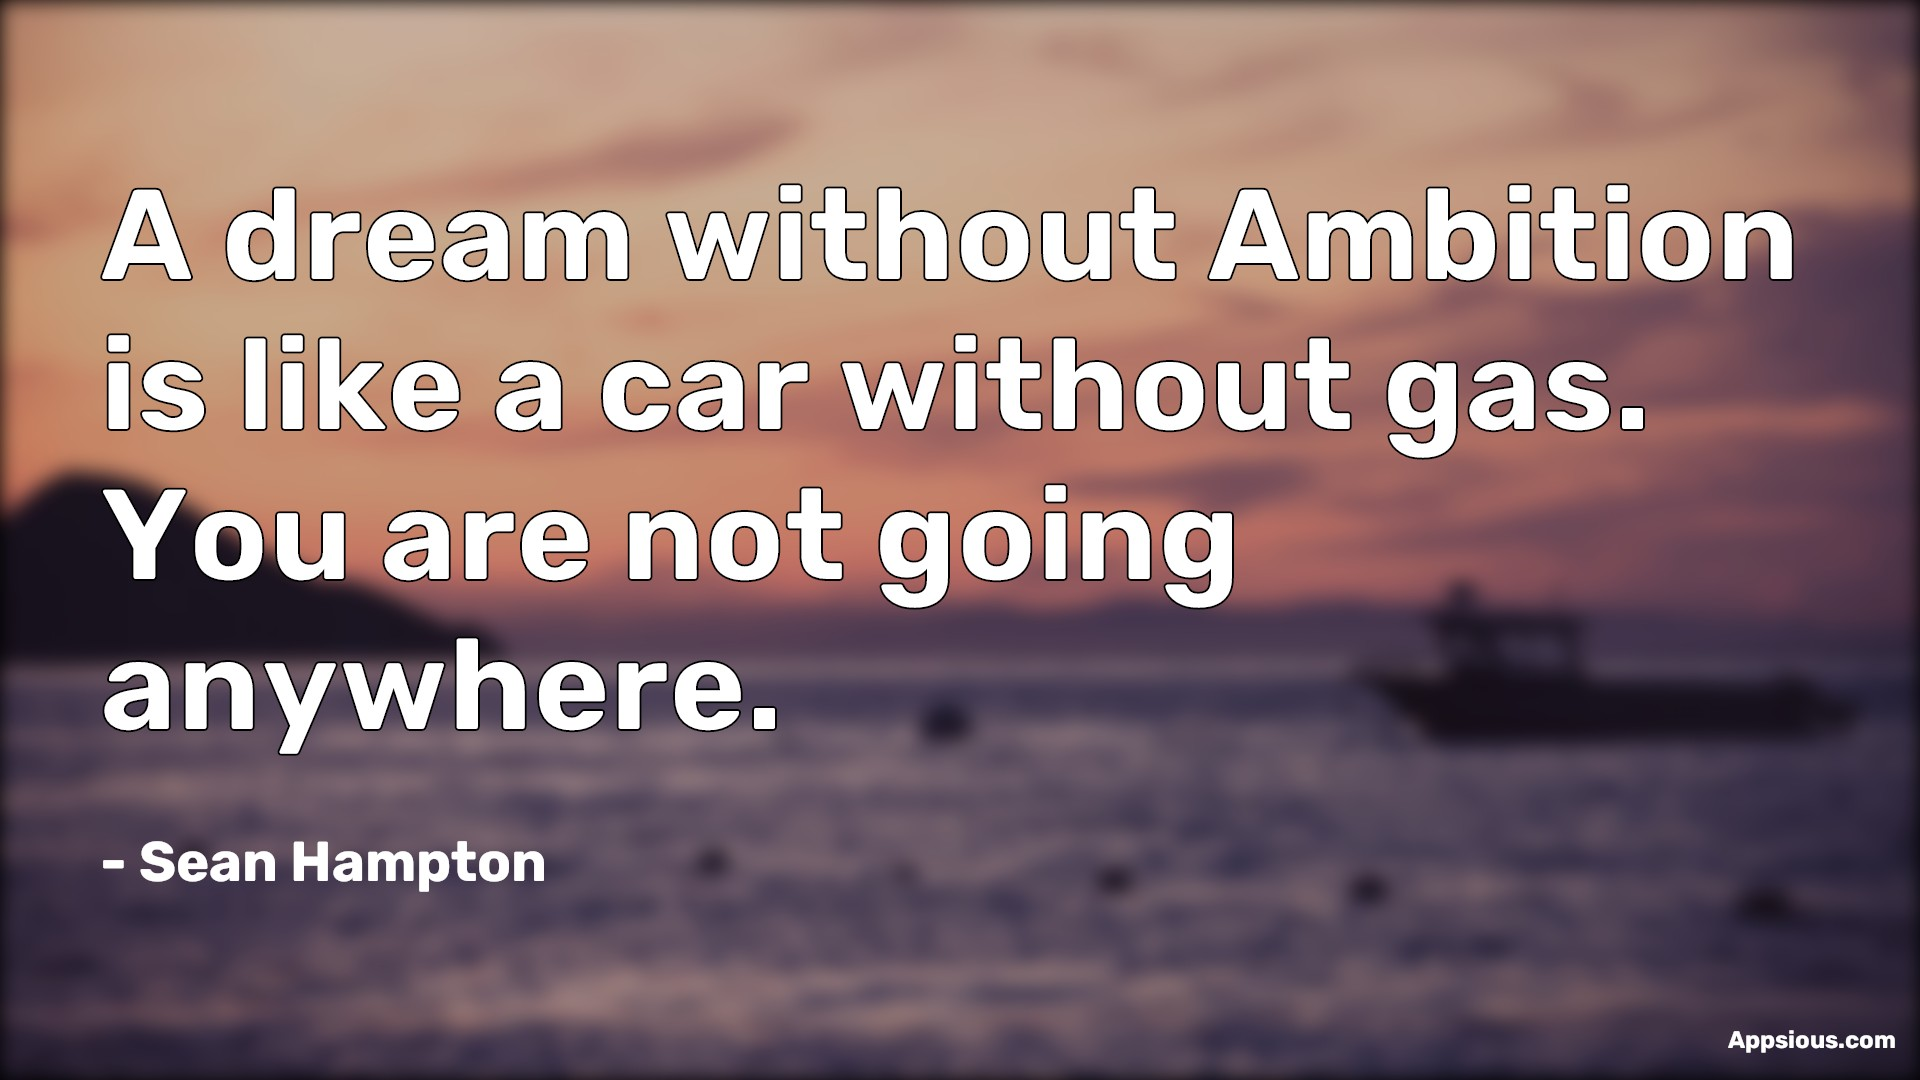 A dream without Ambition is like a car without gas. You are not going anywhere.